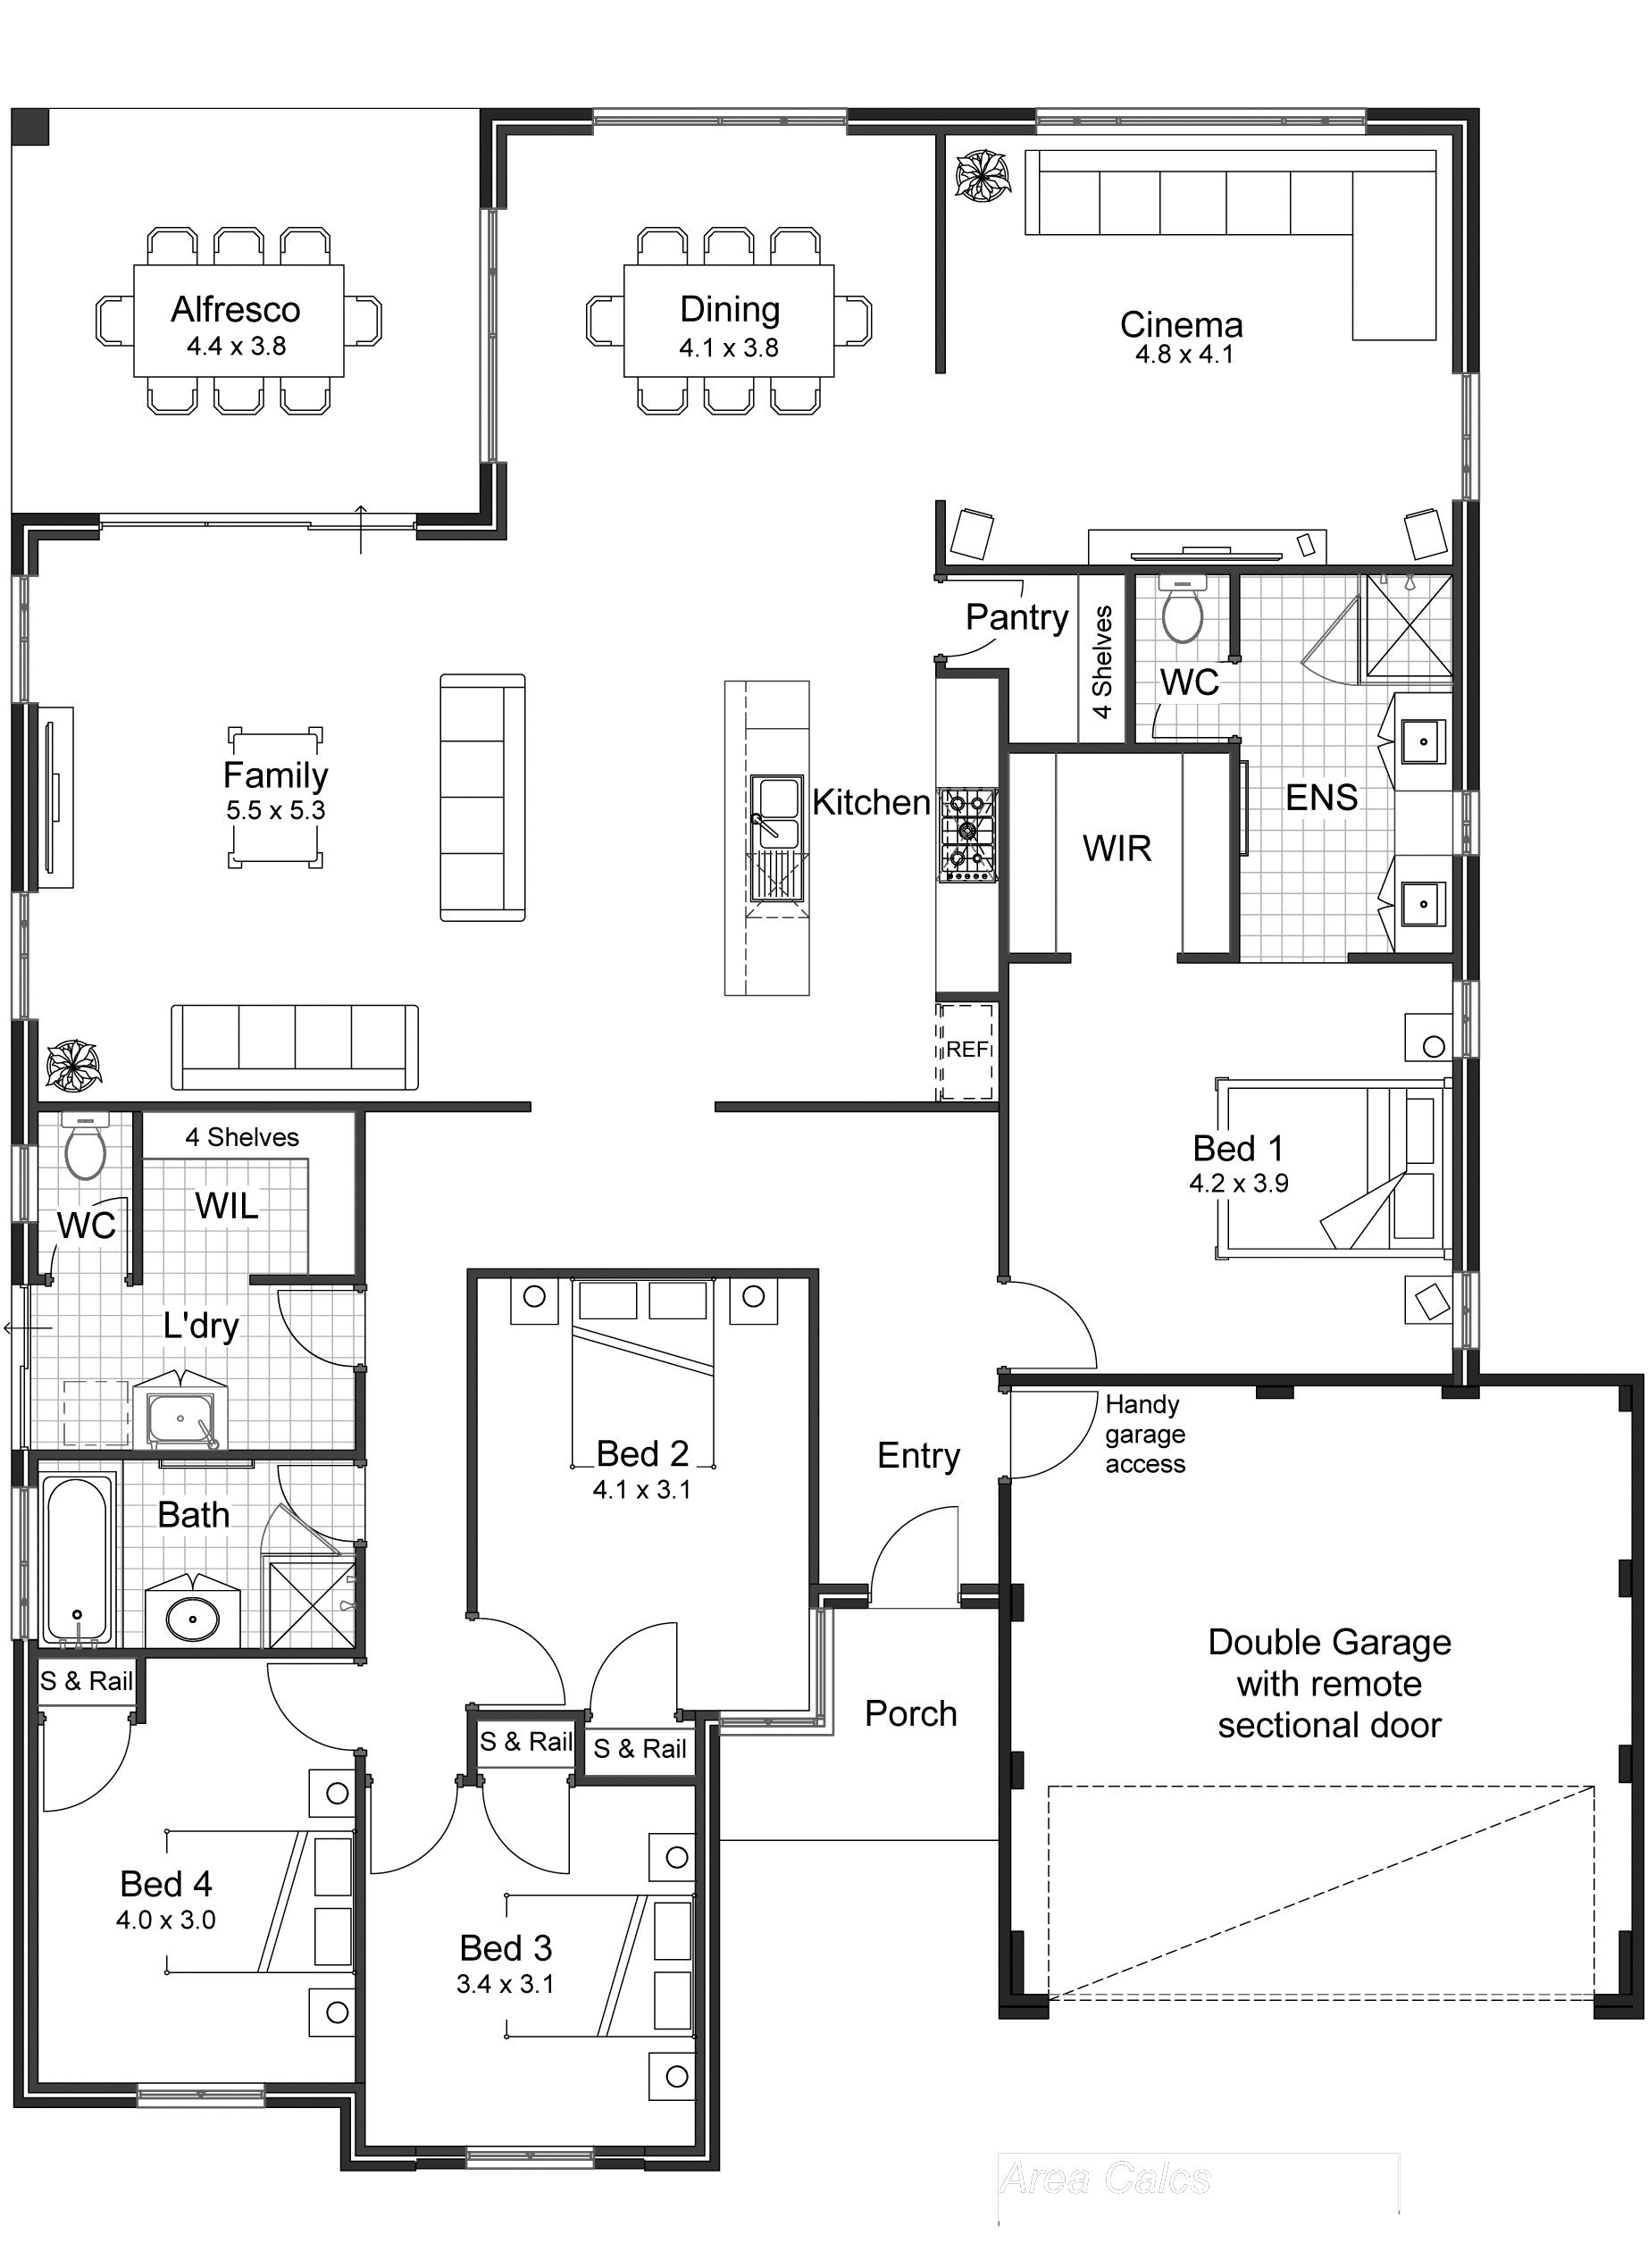 creative open floor plans homes inspirational home On open floor plan homes designs